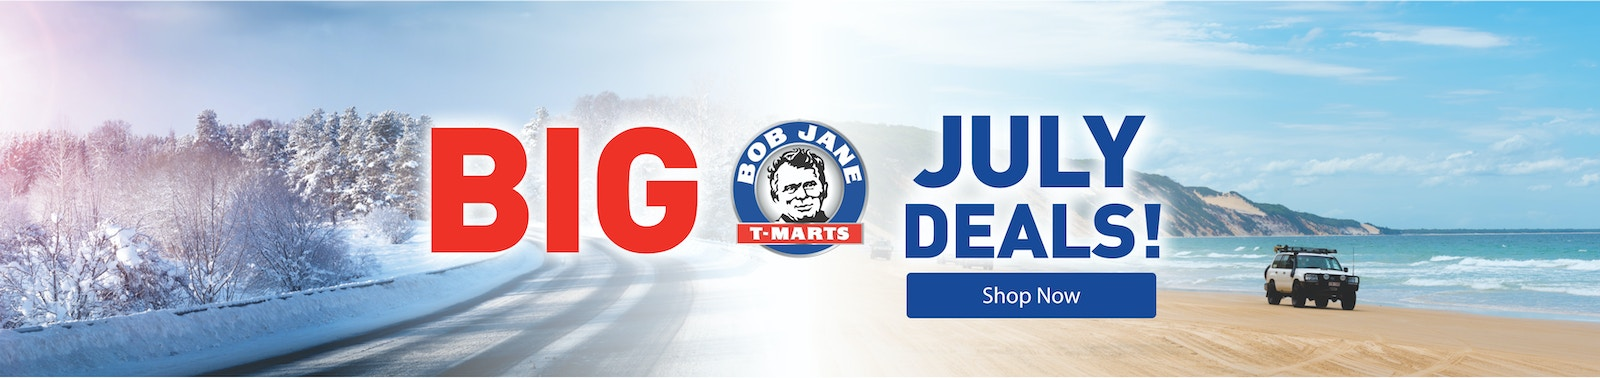 Bob Jane T-Marts July Deals